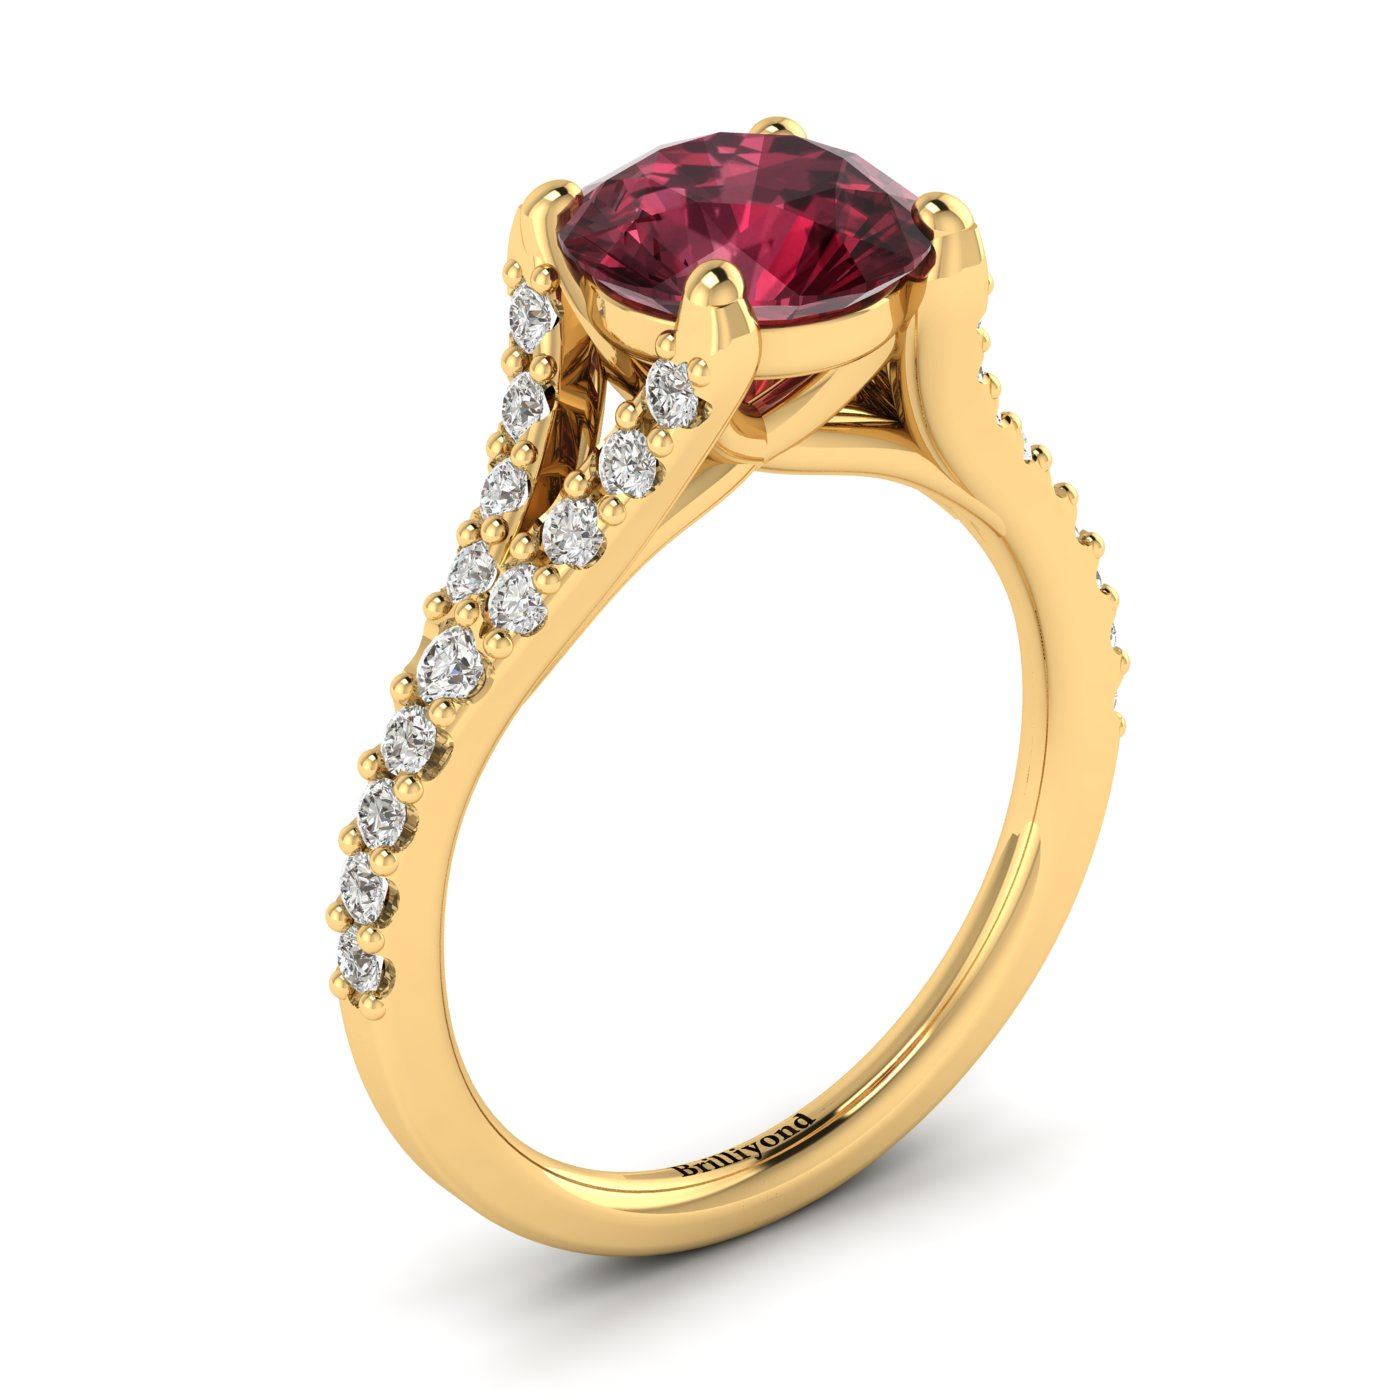 This 18k yellow gold engagement ring has features 26 created diamond accent stones in a pavé split shank setting.